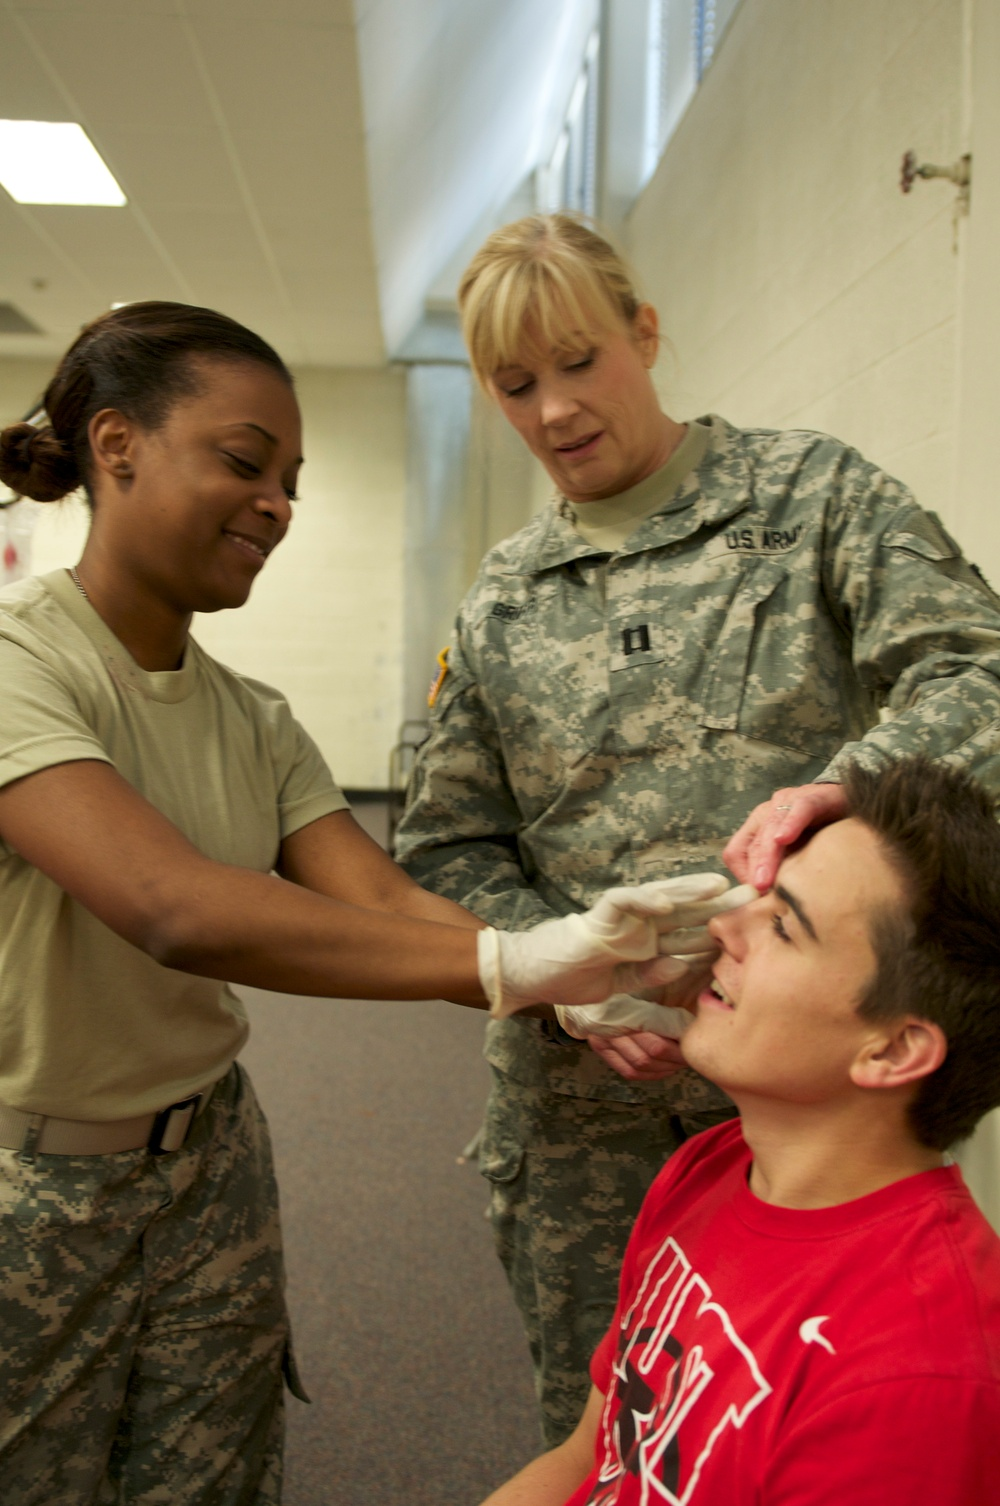 Ready, Set, Makeup: Moulage in earthquake preparedness